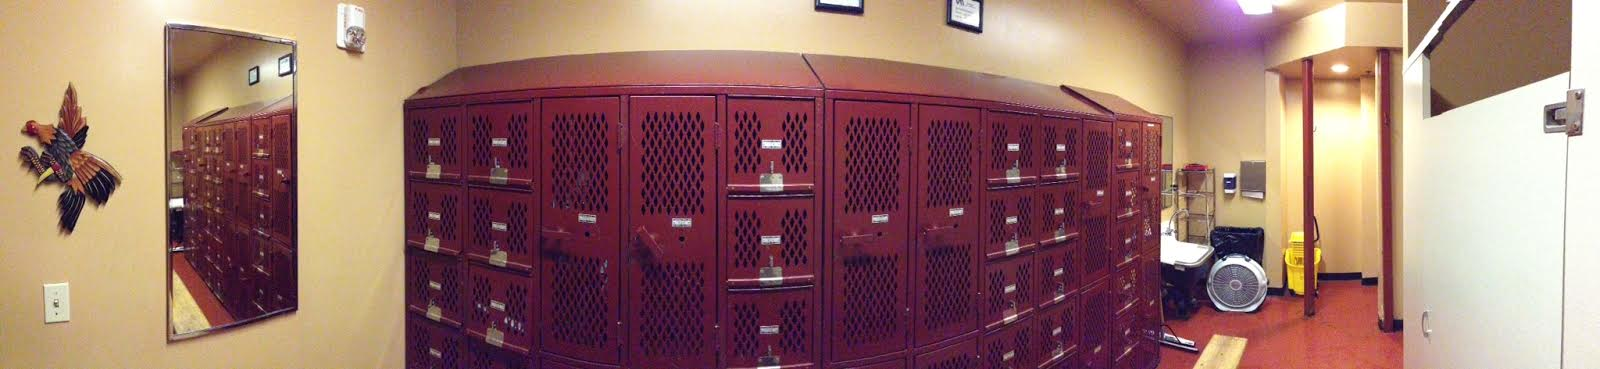 LockerRoom_Mens02.jpg